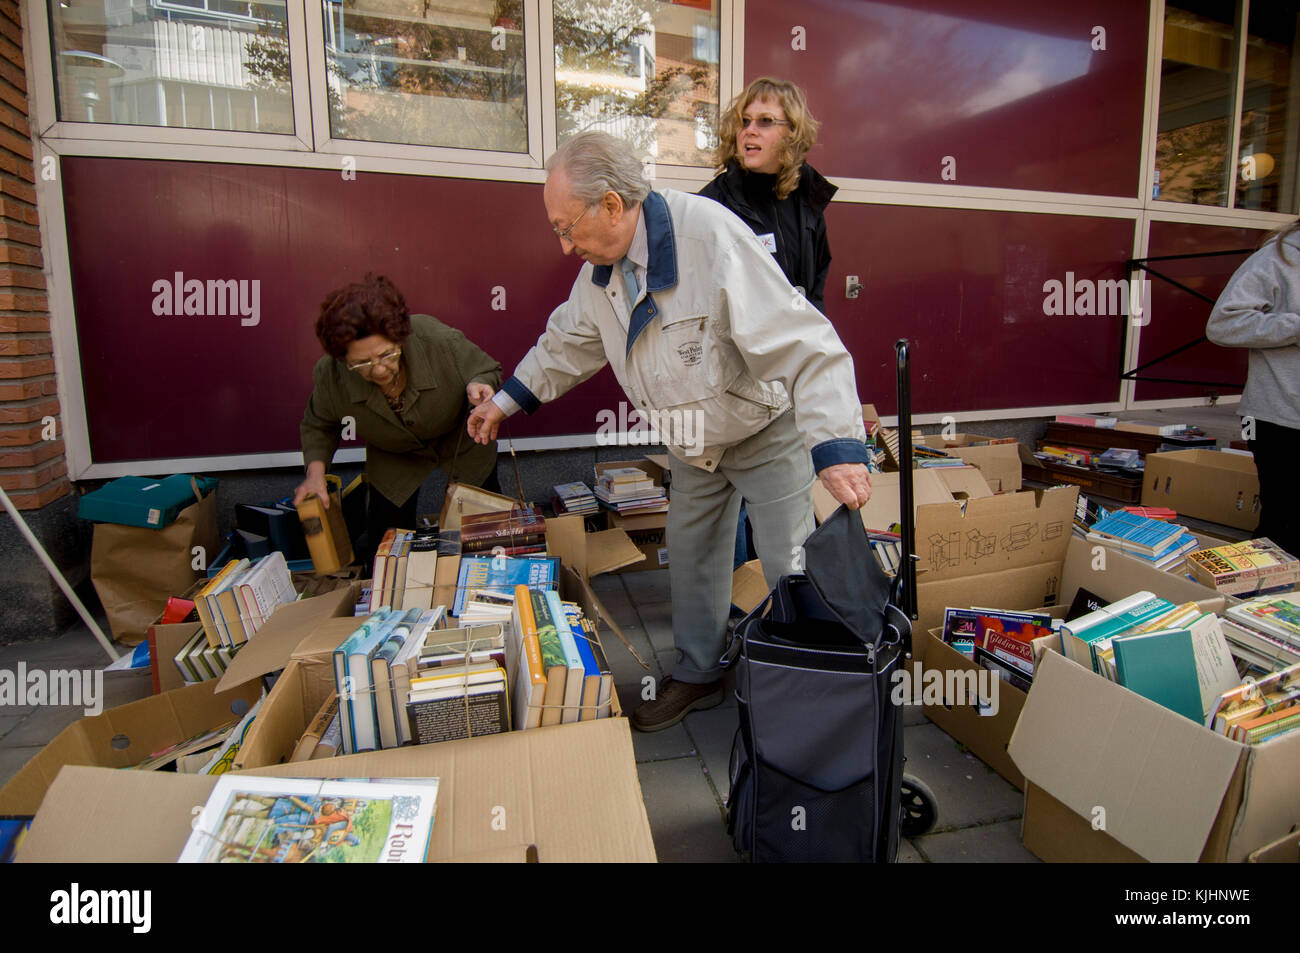 People find out in a flea market, Upplands Väsby, Sweden. - Stock Image